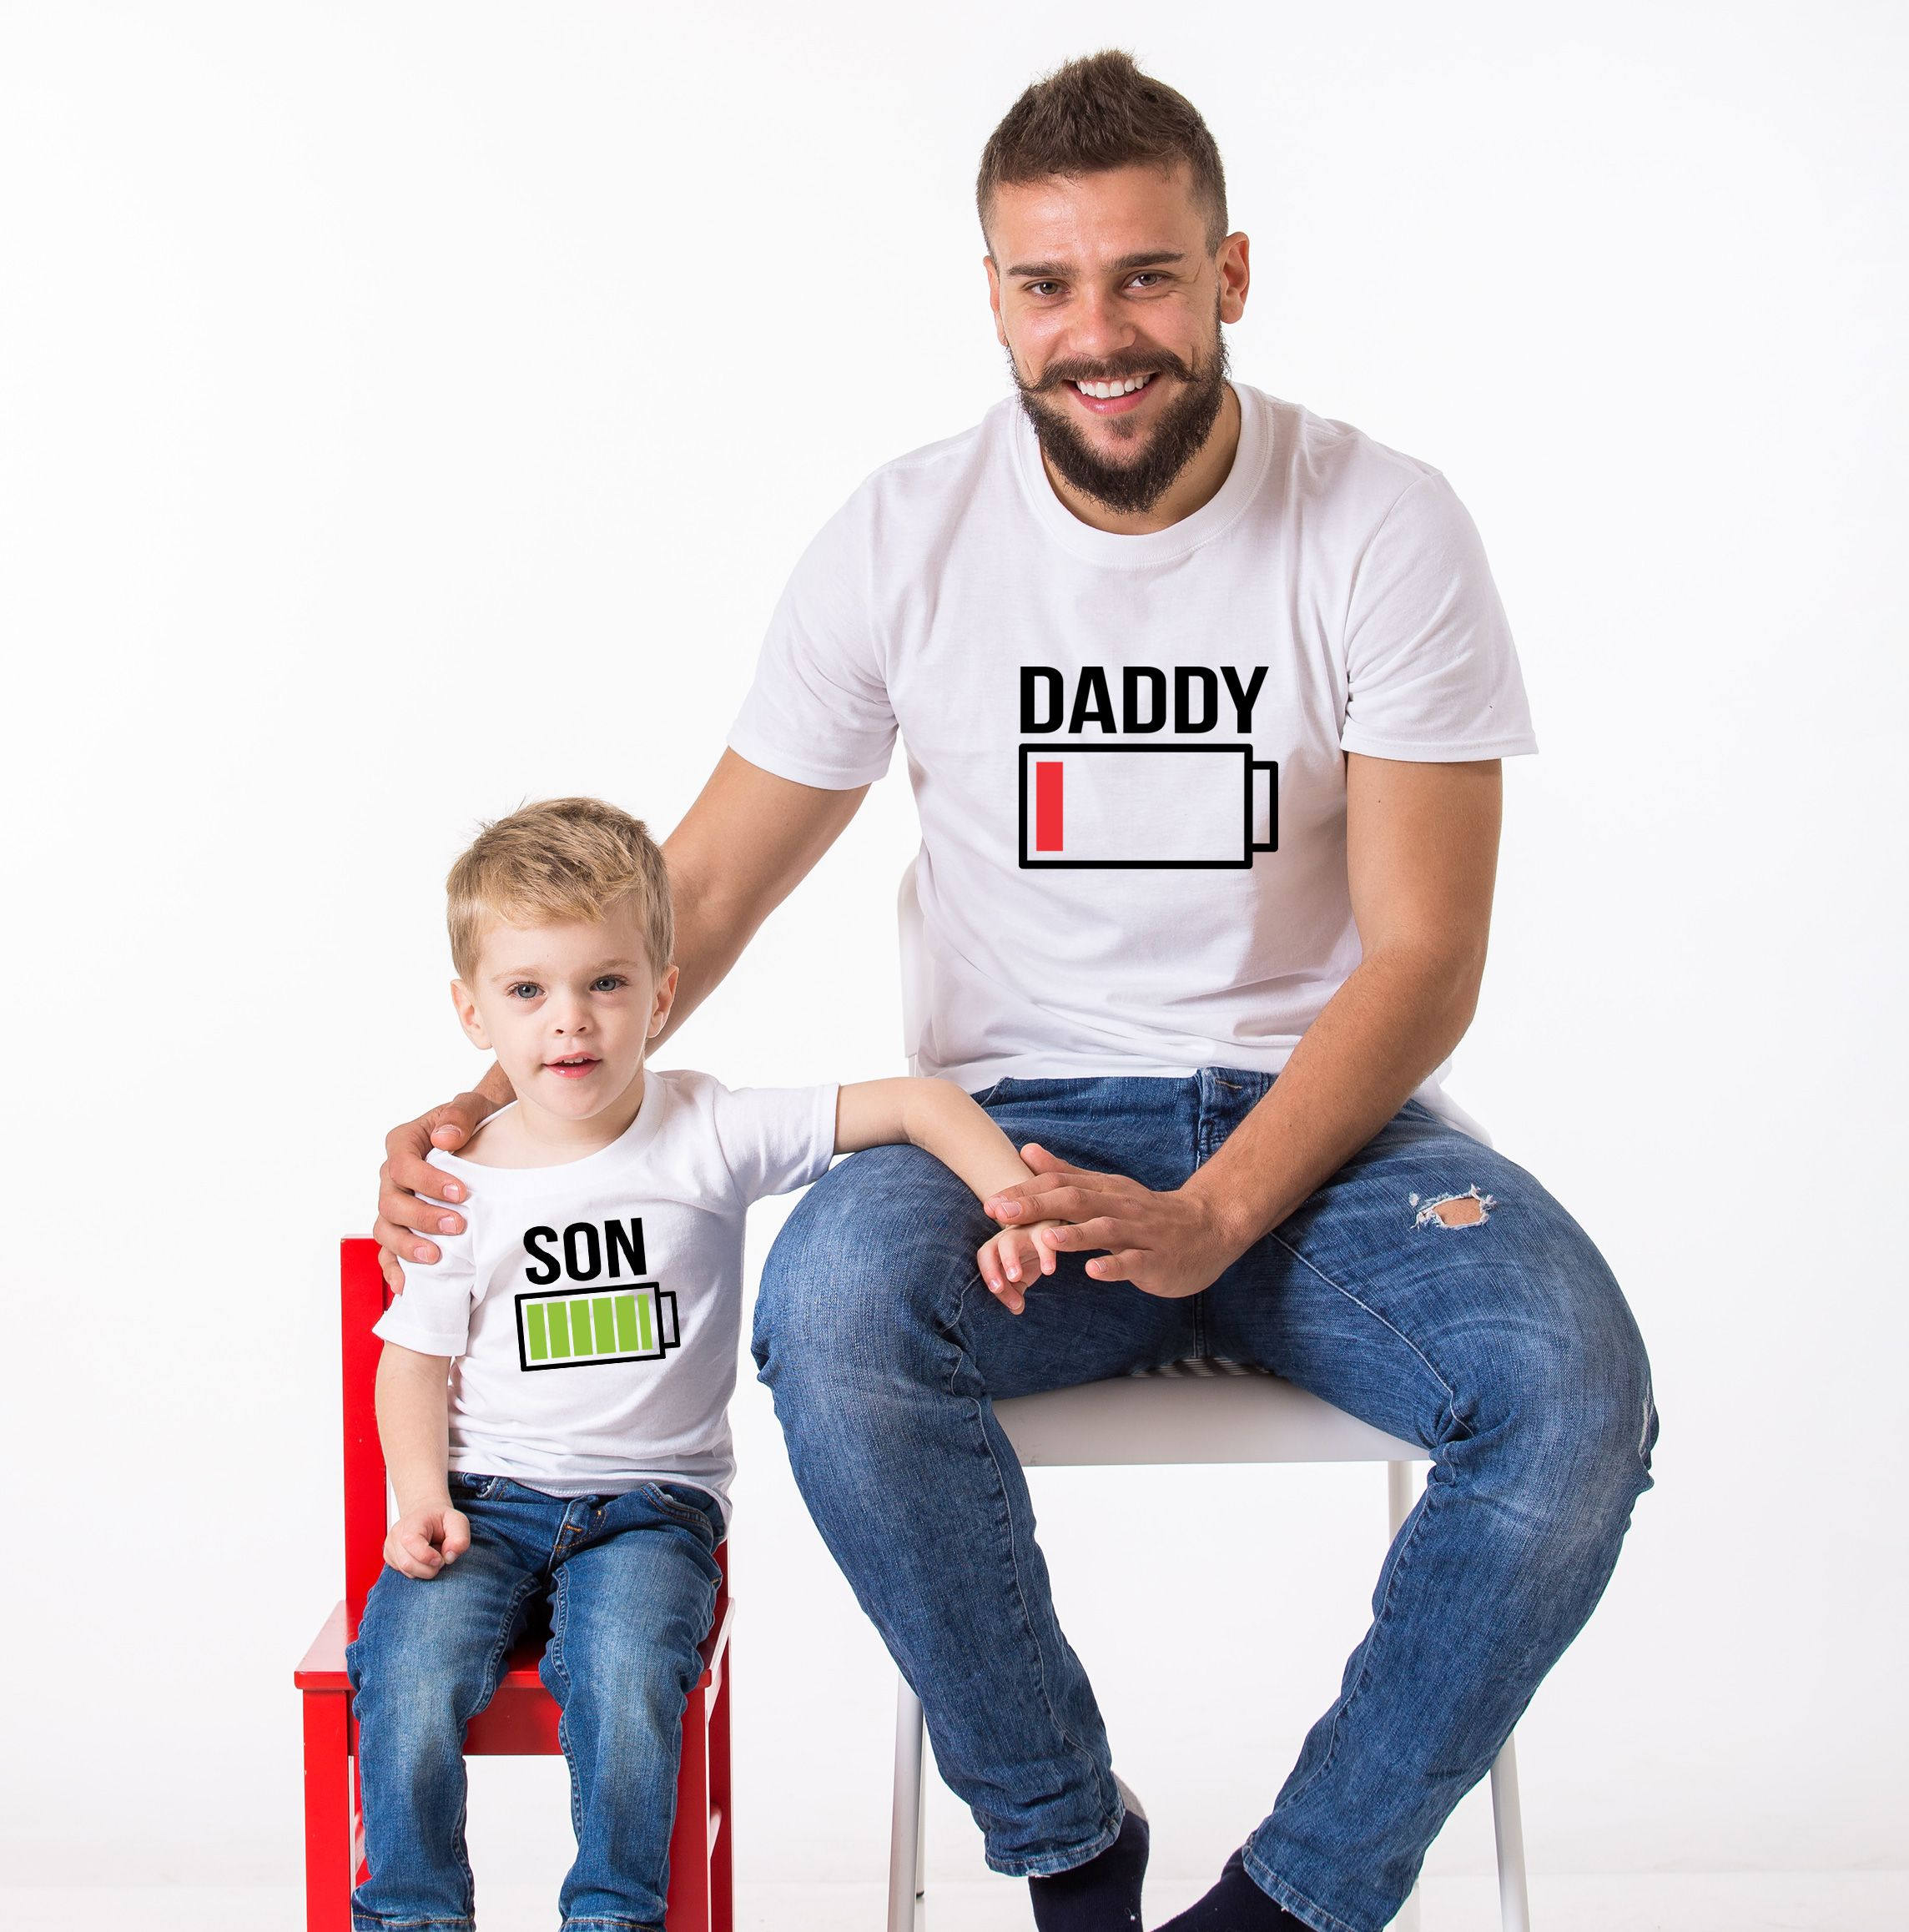 2c02d426 Battery Full Battery Empty, Matching Daddy and Me Shirts UNISEX